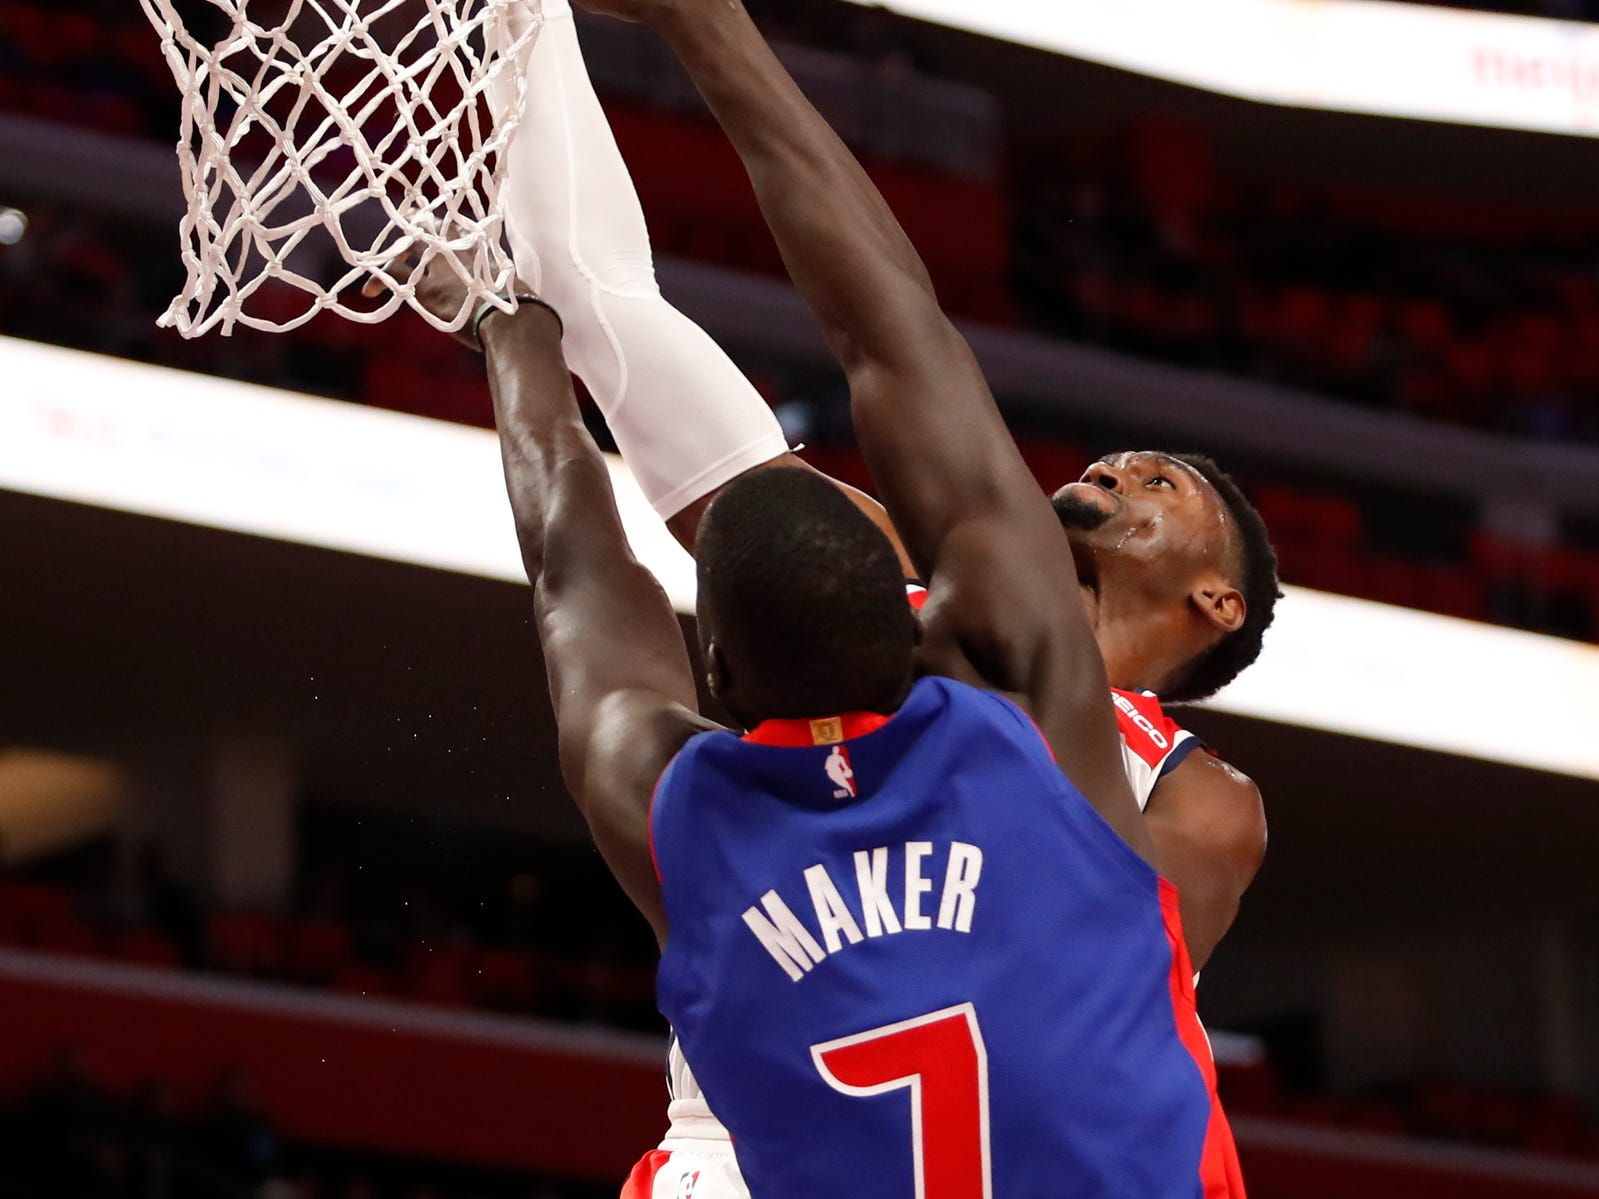 Washington Wizards' Bobby Portis has his dunk blocked by Detroit Pistons' Thon Maker in the first quarter at Little Caesars Arena, Feb. 11, 2019.